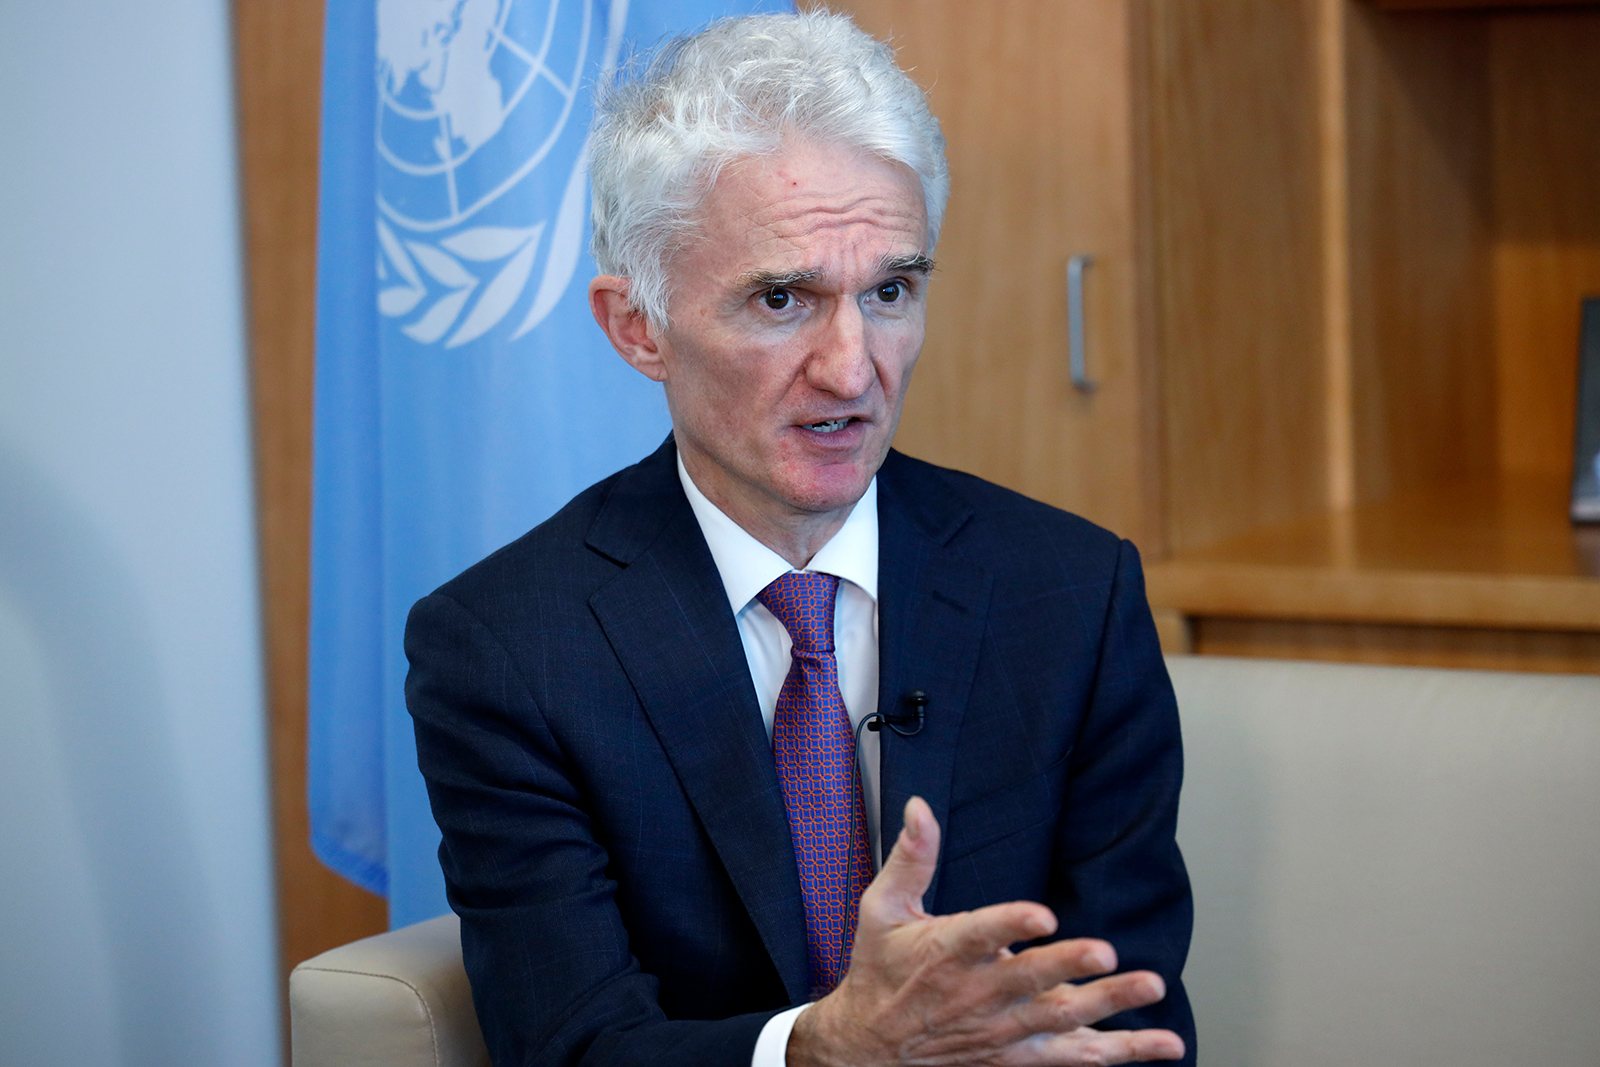 United Nations Undersecretary-General for Humanitarian Affairs and Emergency Relief Coordinator Mark Lowcock speaks in an interview with Xinhua at the UN headquarters in New York on February 13.